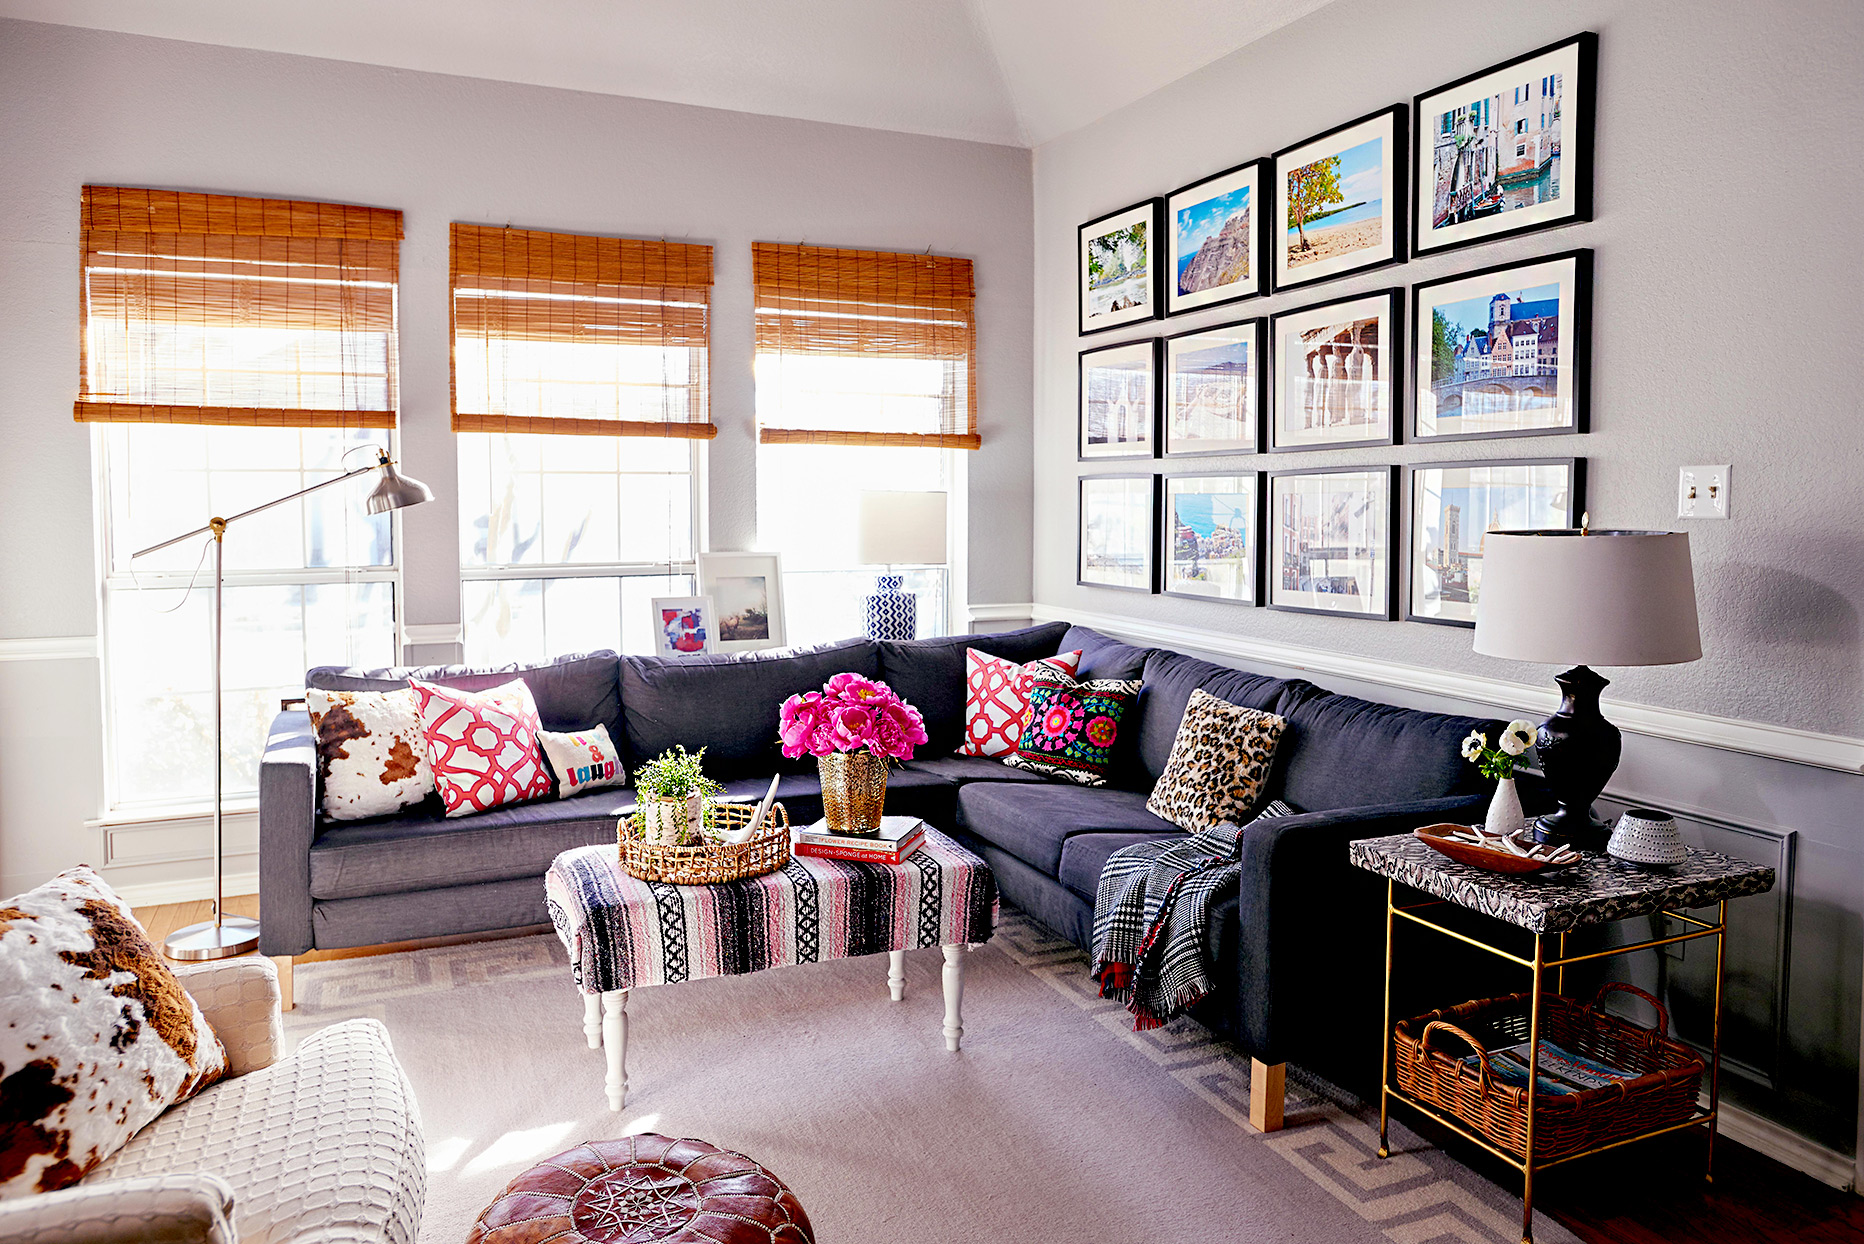 Living room with photographs hanging behind couch